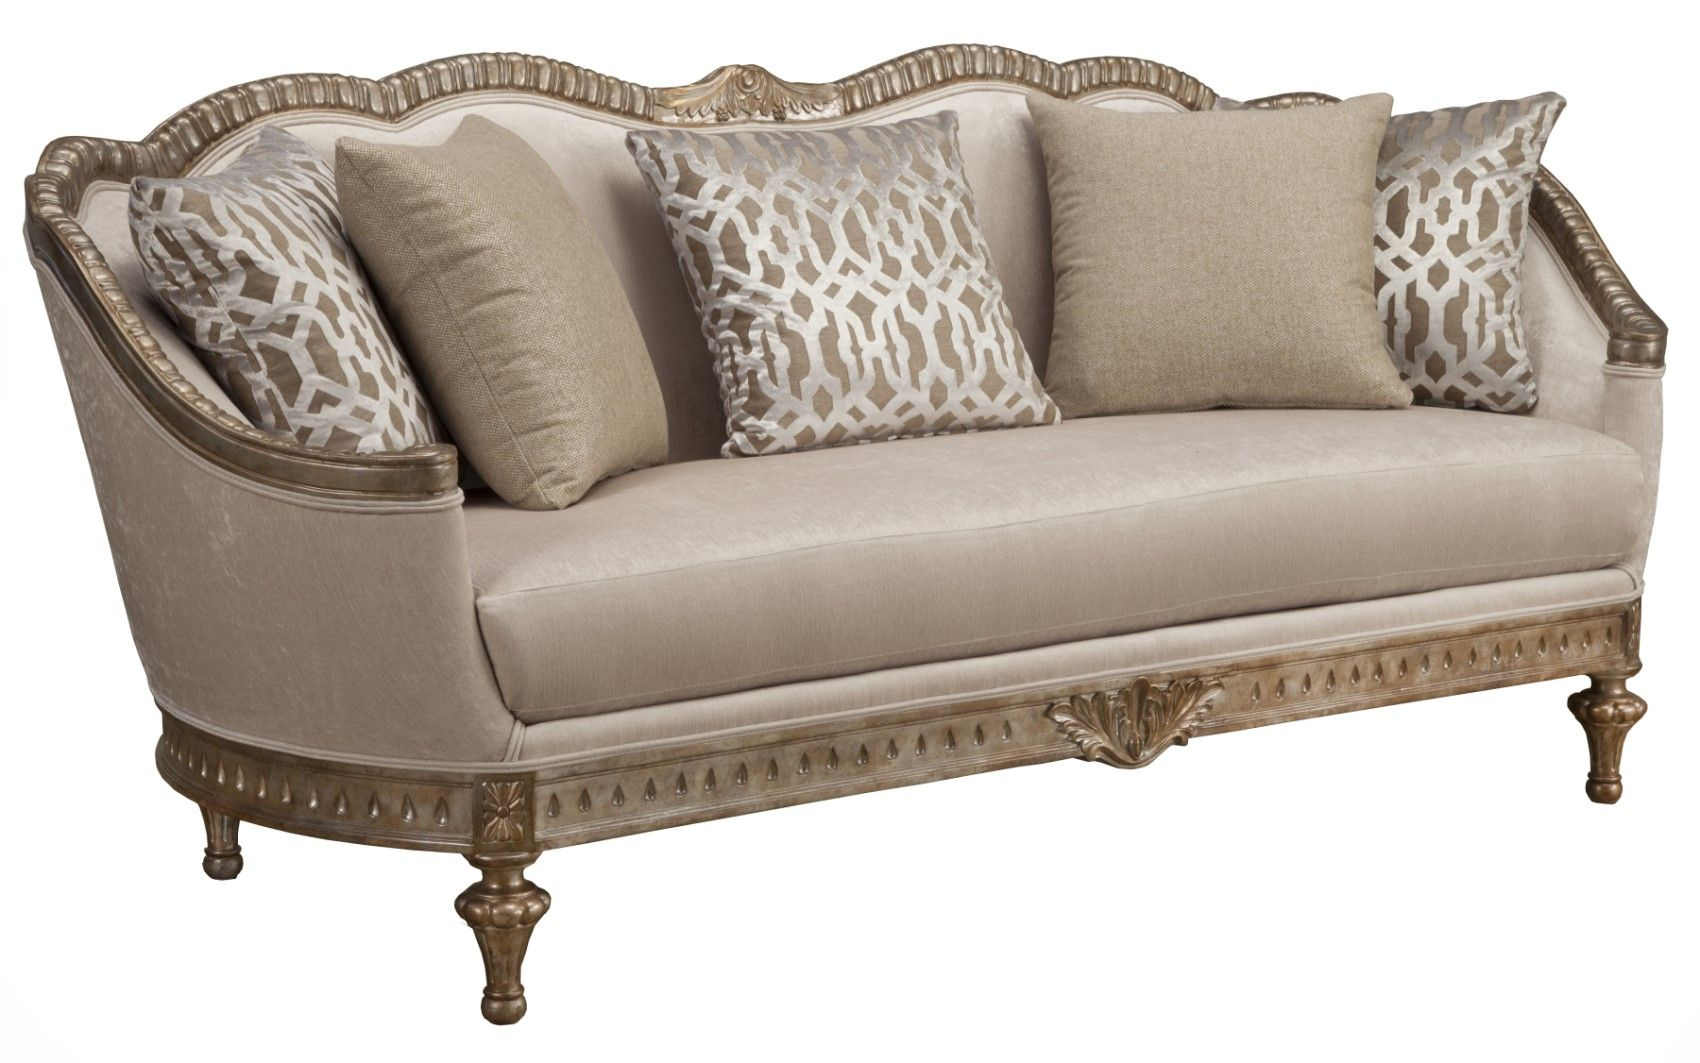 Lugano Traditional Beige Fabric Cabriole Sofa With Exposed For Fabric Sofas (View 14 of 15)